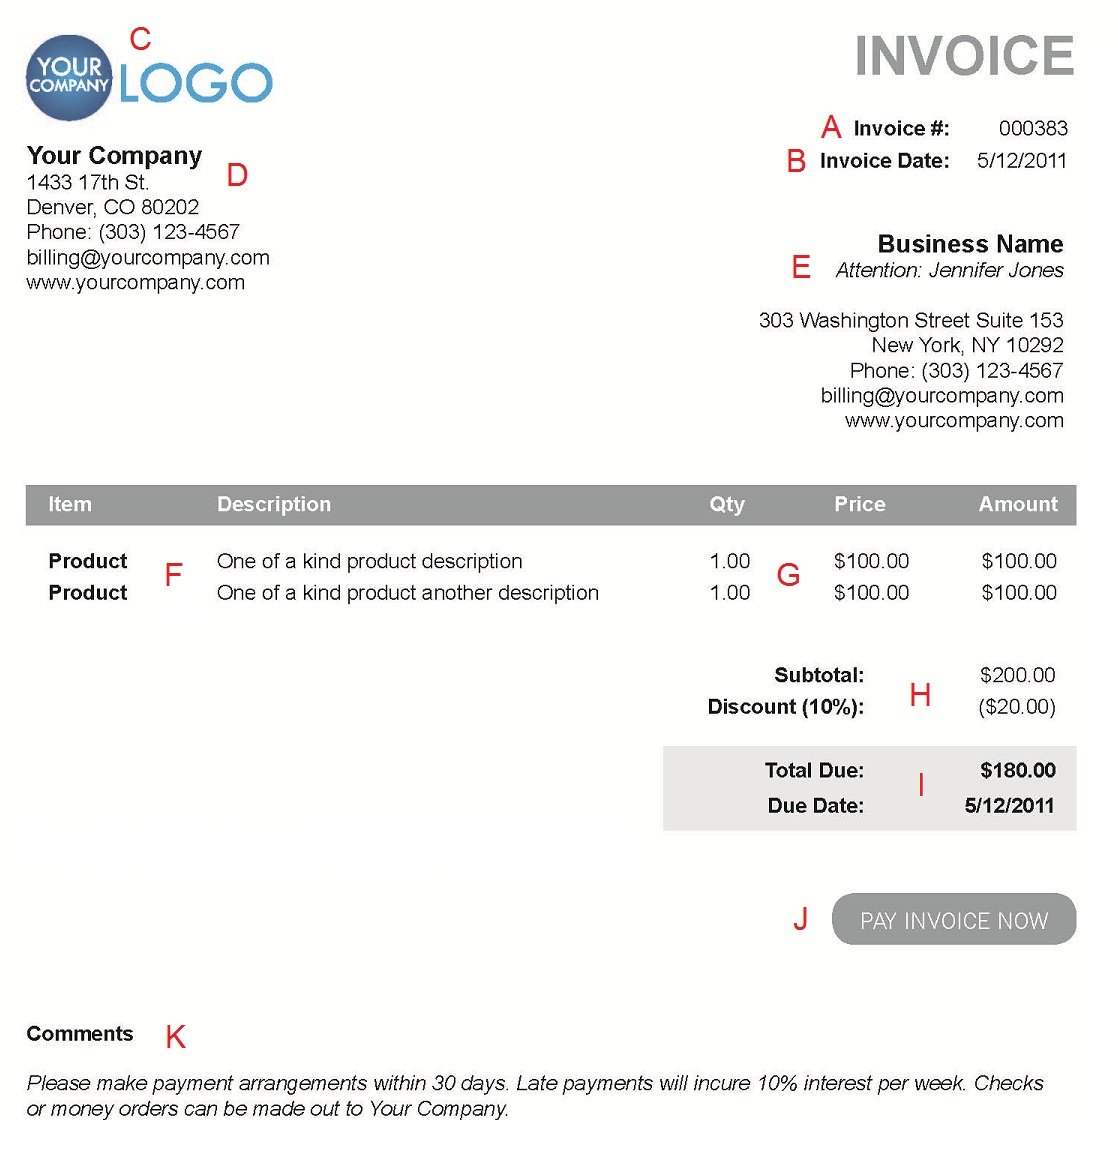 Coolmathgamesus  Stunning The  Different Sections Of An Electronic Payment Invoice With Goodlooking A  With Divine Requirements Of Tax Invoice Also Download Invoices In Addition Billing Invoices Templates Free And Template For Tax Invoice As Well As Basic Invoice Format Additionally Msrp And Invoice Price From Paysimplecom With Coolmathgamesus  Goodlooking The  Different Sections Of An Electronic Payment Invoice With Divine A  And Stunning Requirements Of Tax Invoice Also Download Invoices In Addition Billing Invoices Templates Free From Paysimplecom